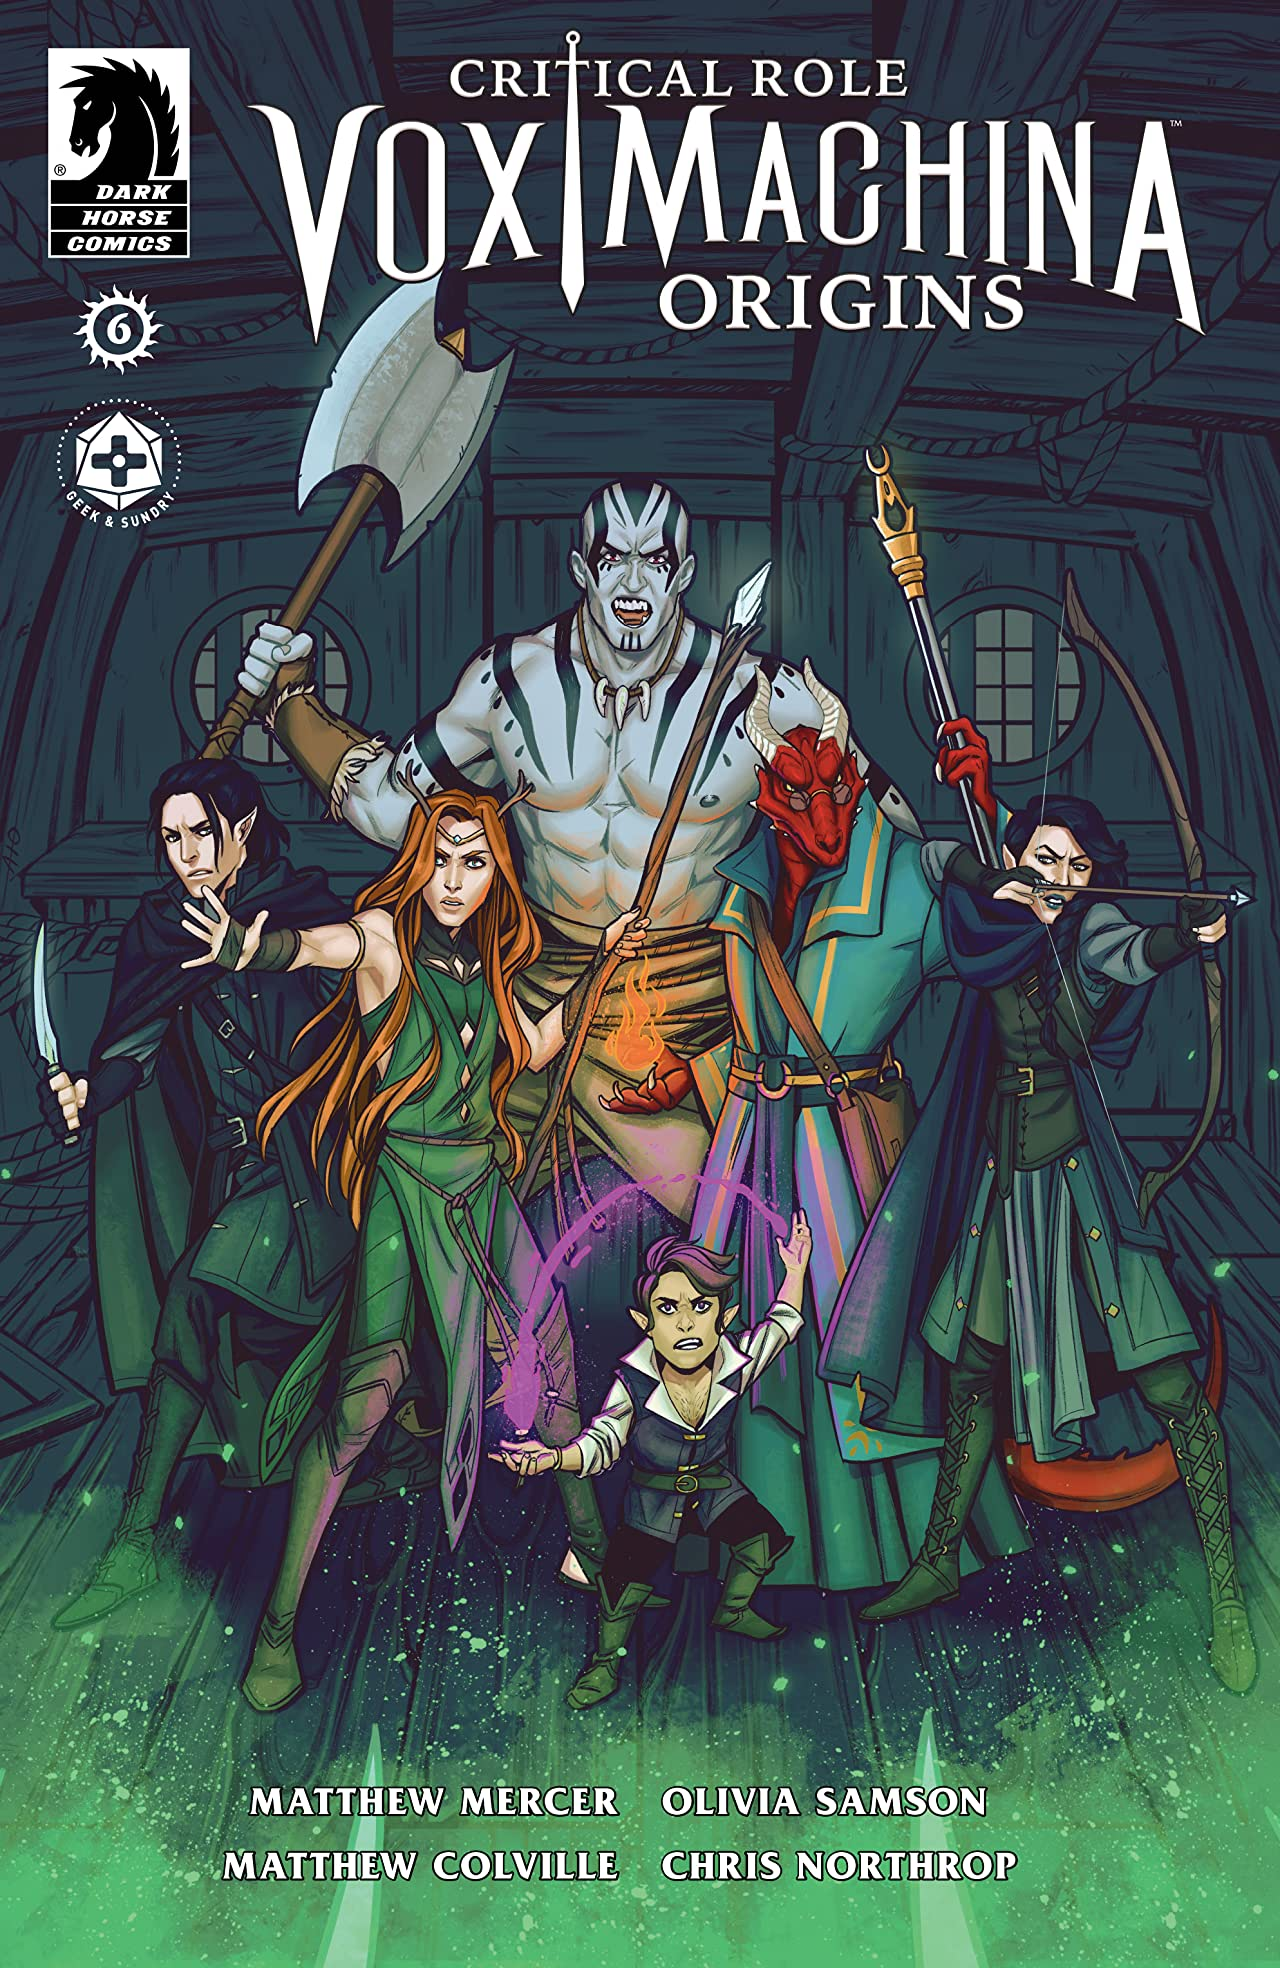 Critical Role: Vox Machina Origins No.6